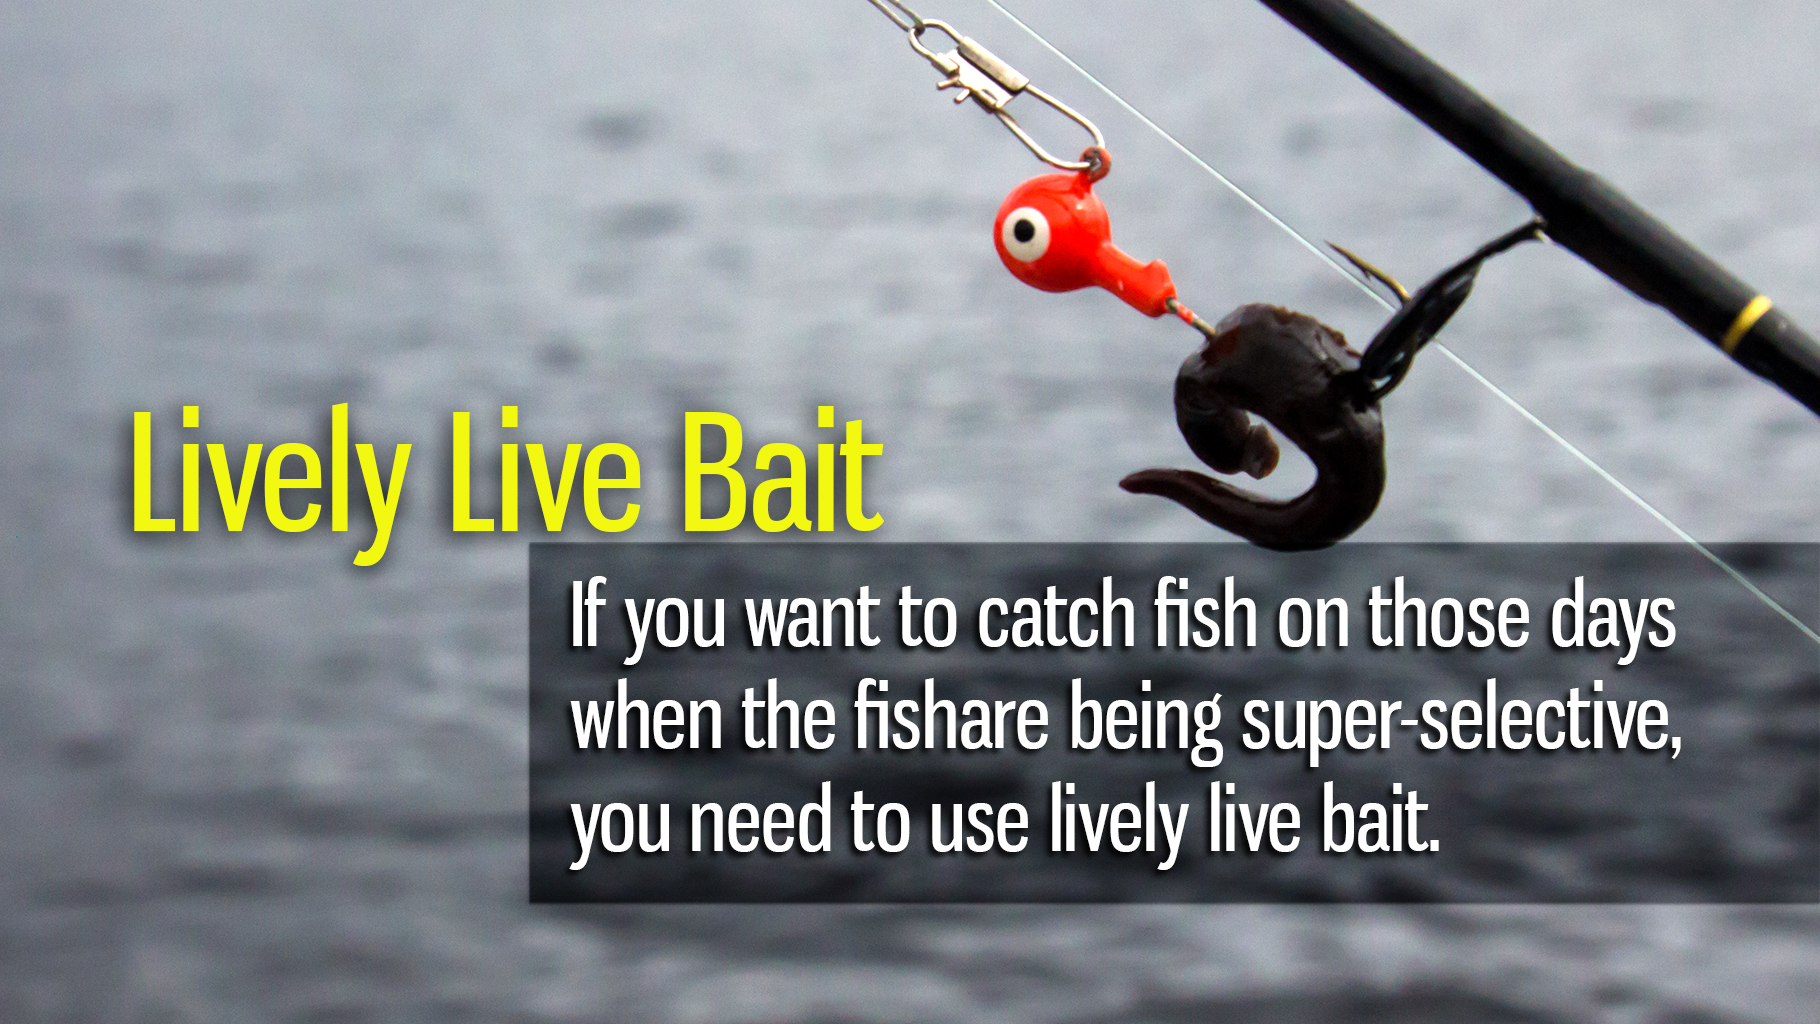 Lively Live Bait for More Summer Fish